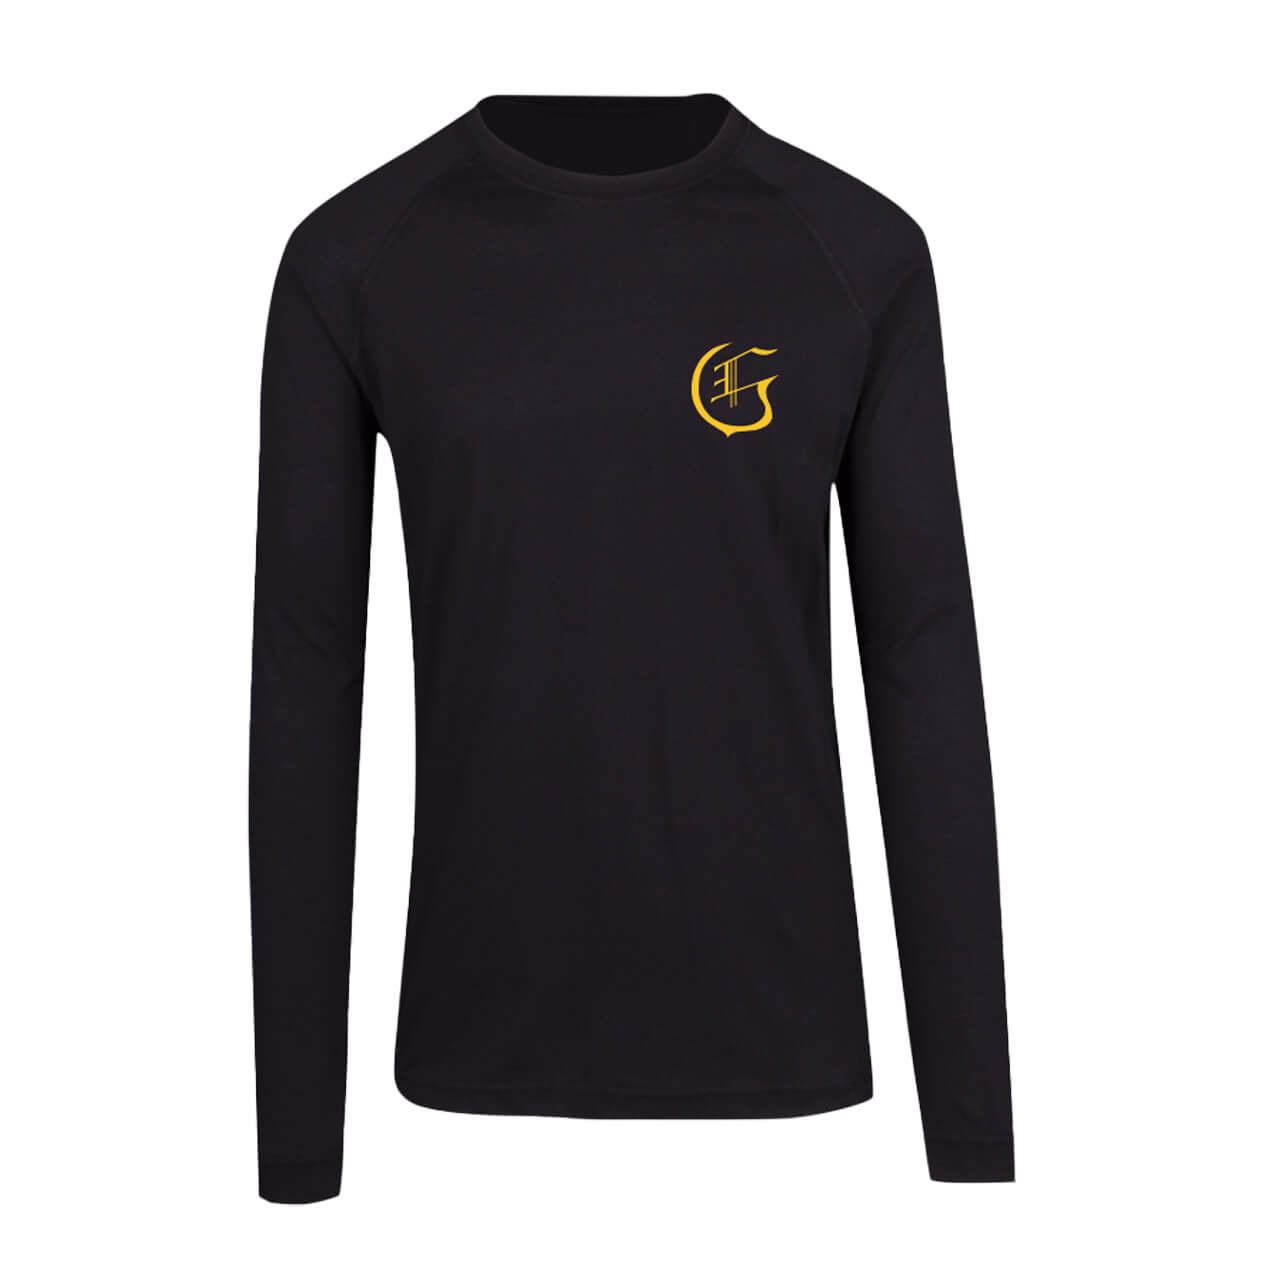 Ladies Long Sleeve Tees